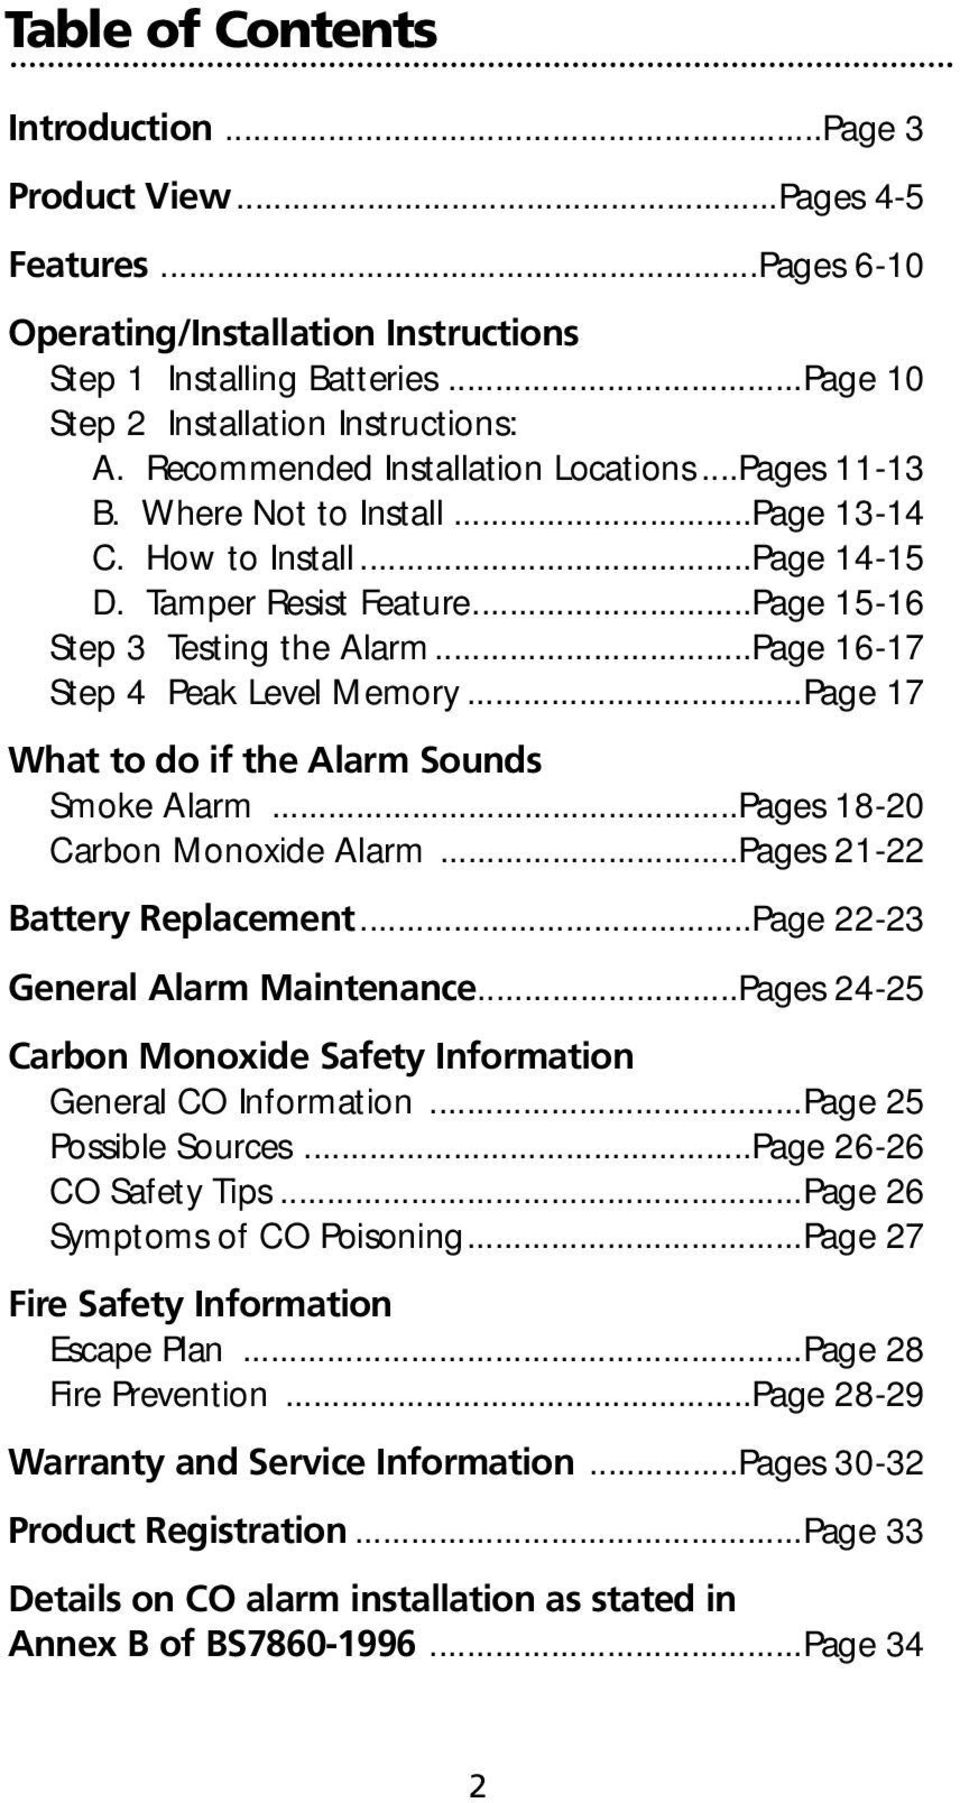 ..Page 16-17 Step 4 Peak Level Memory...Page 17 What to do if the Alarm Sounds Smoke Alarm...Pages 18-20 Carbon Monoxide Alarm...Pages 21-22 Battery Replacement...Page 22-23 General Alarm Maintenance.